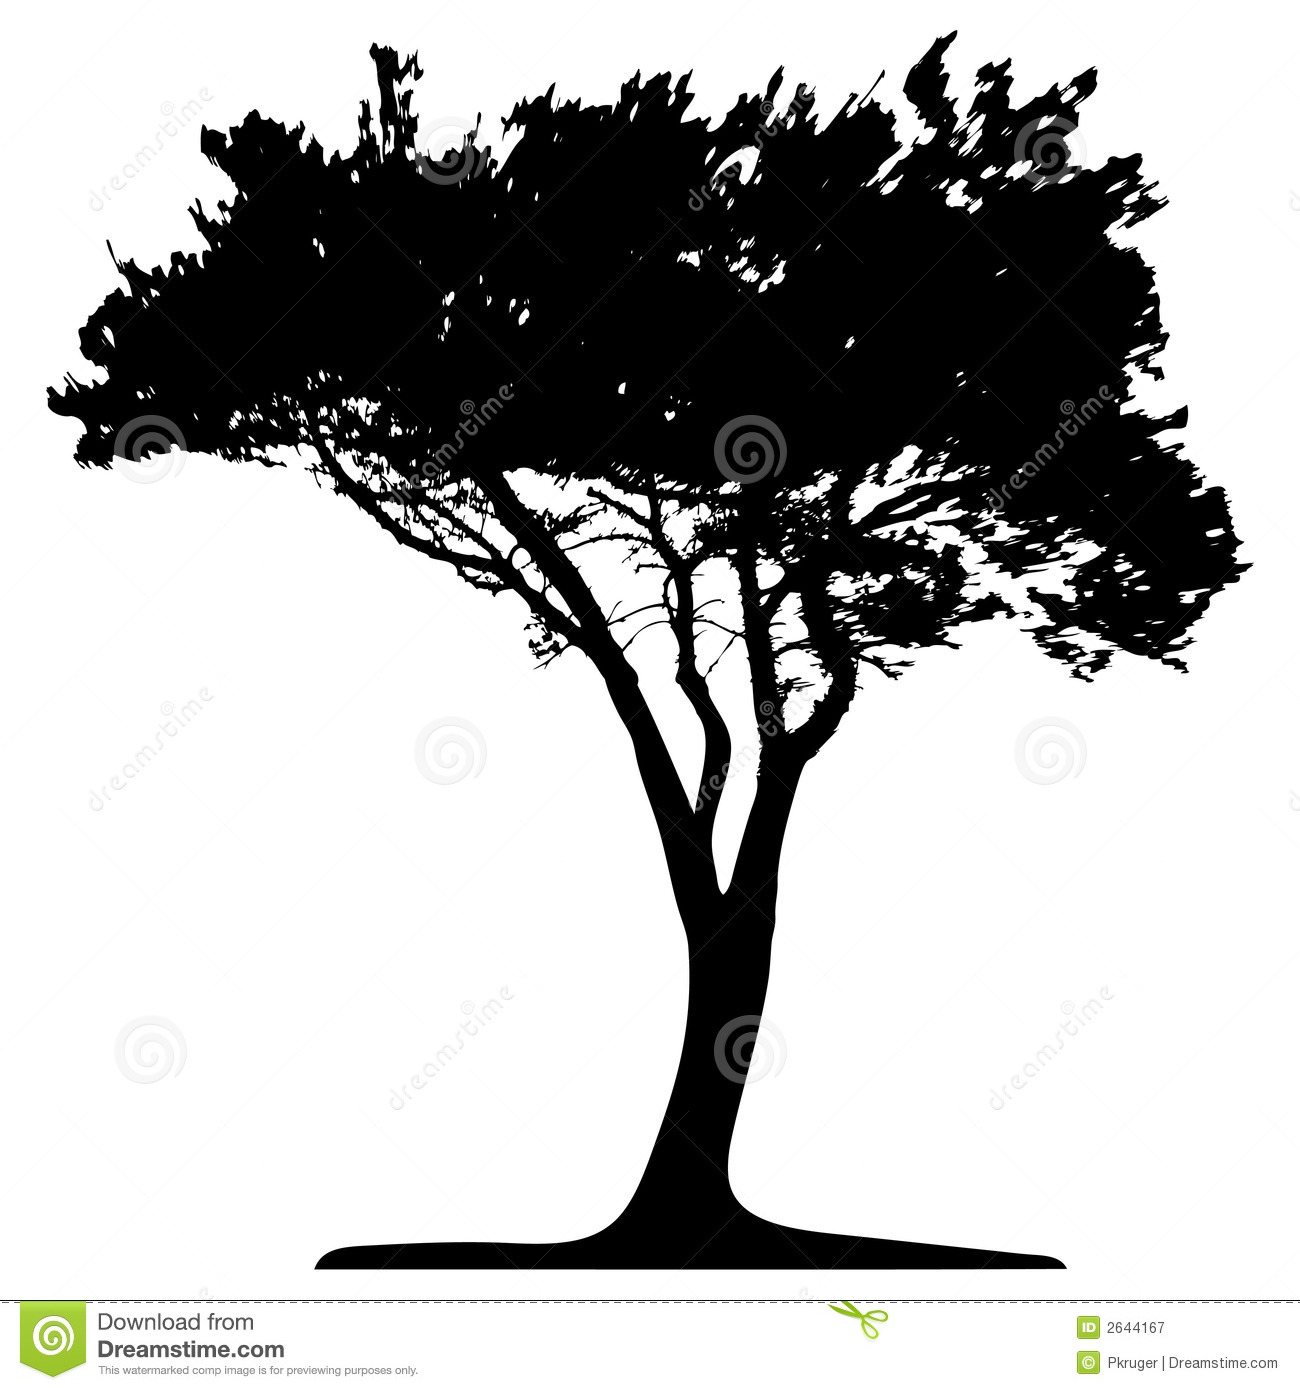 Pine Tree Stencil Trees - this image is a vector